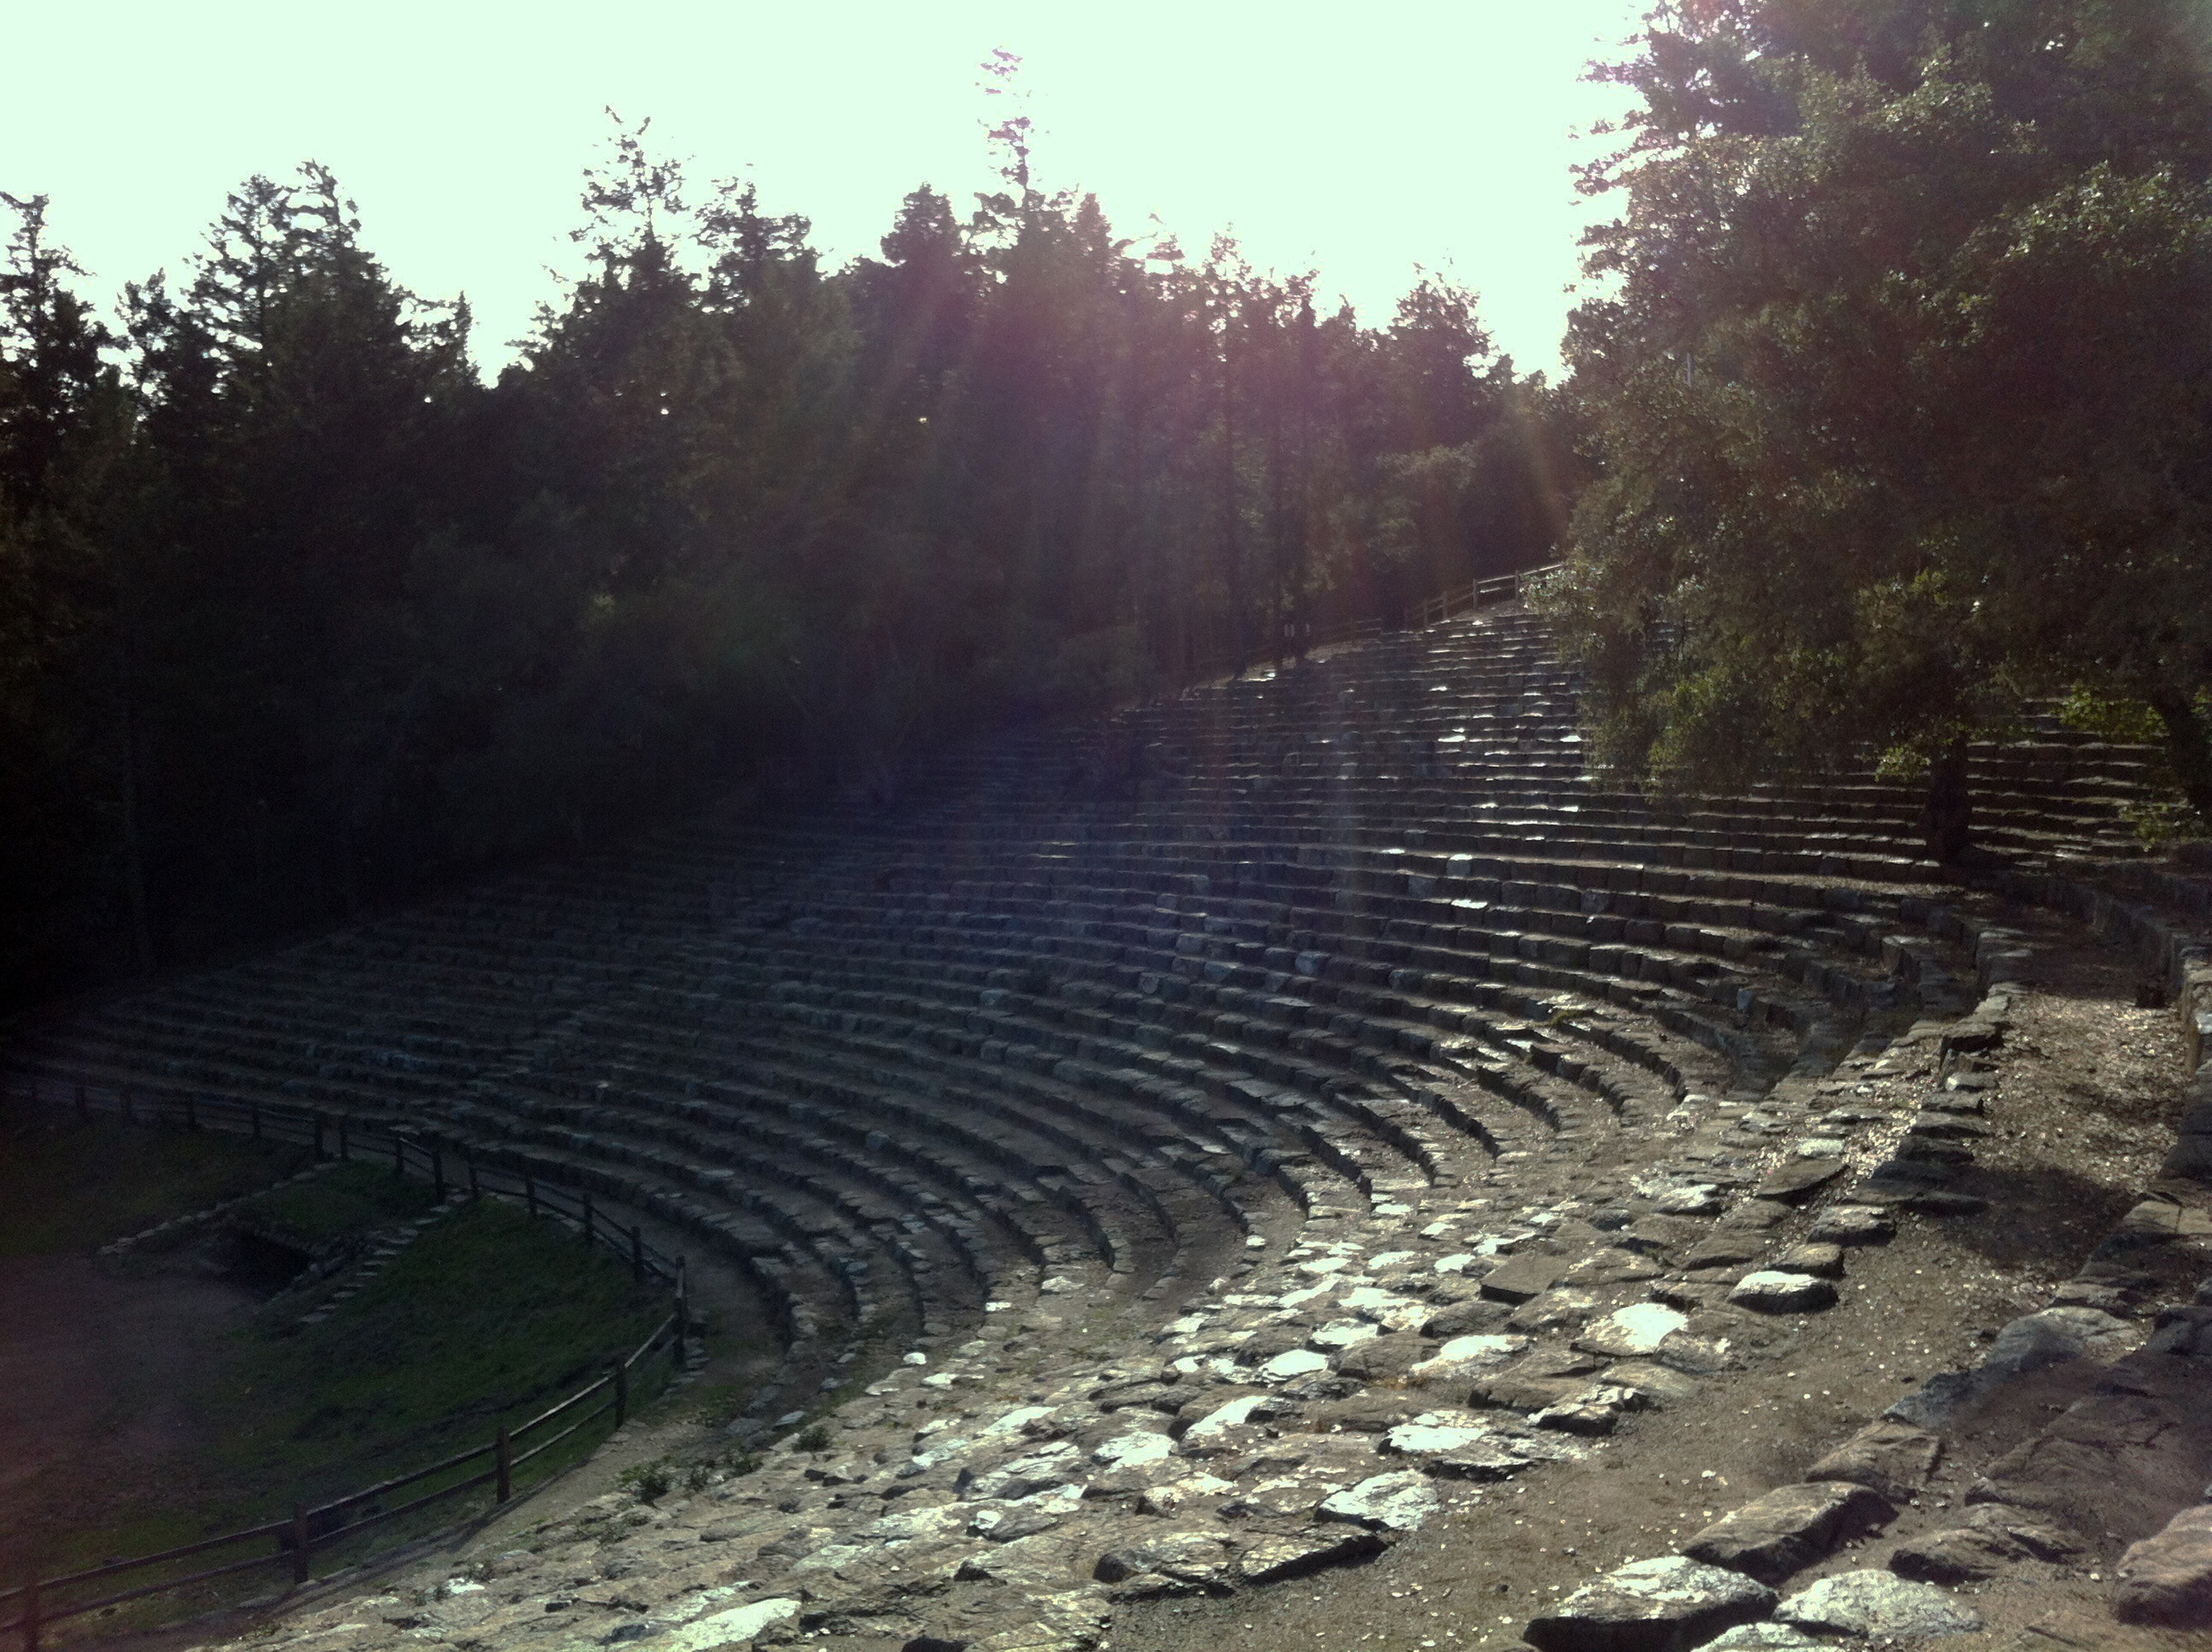 The Mountain Ampitheater at Mount Tamalpais, site of renowned annual live performances of Shakespeare and other works.  (photo by D. Speredelozzi)